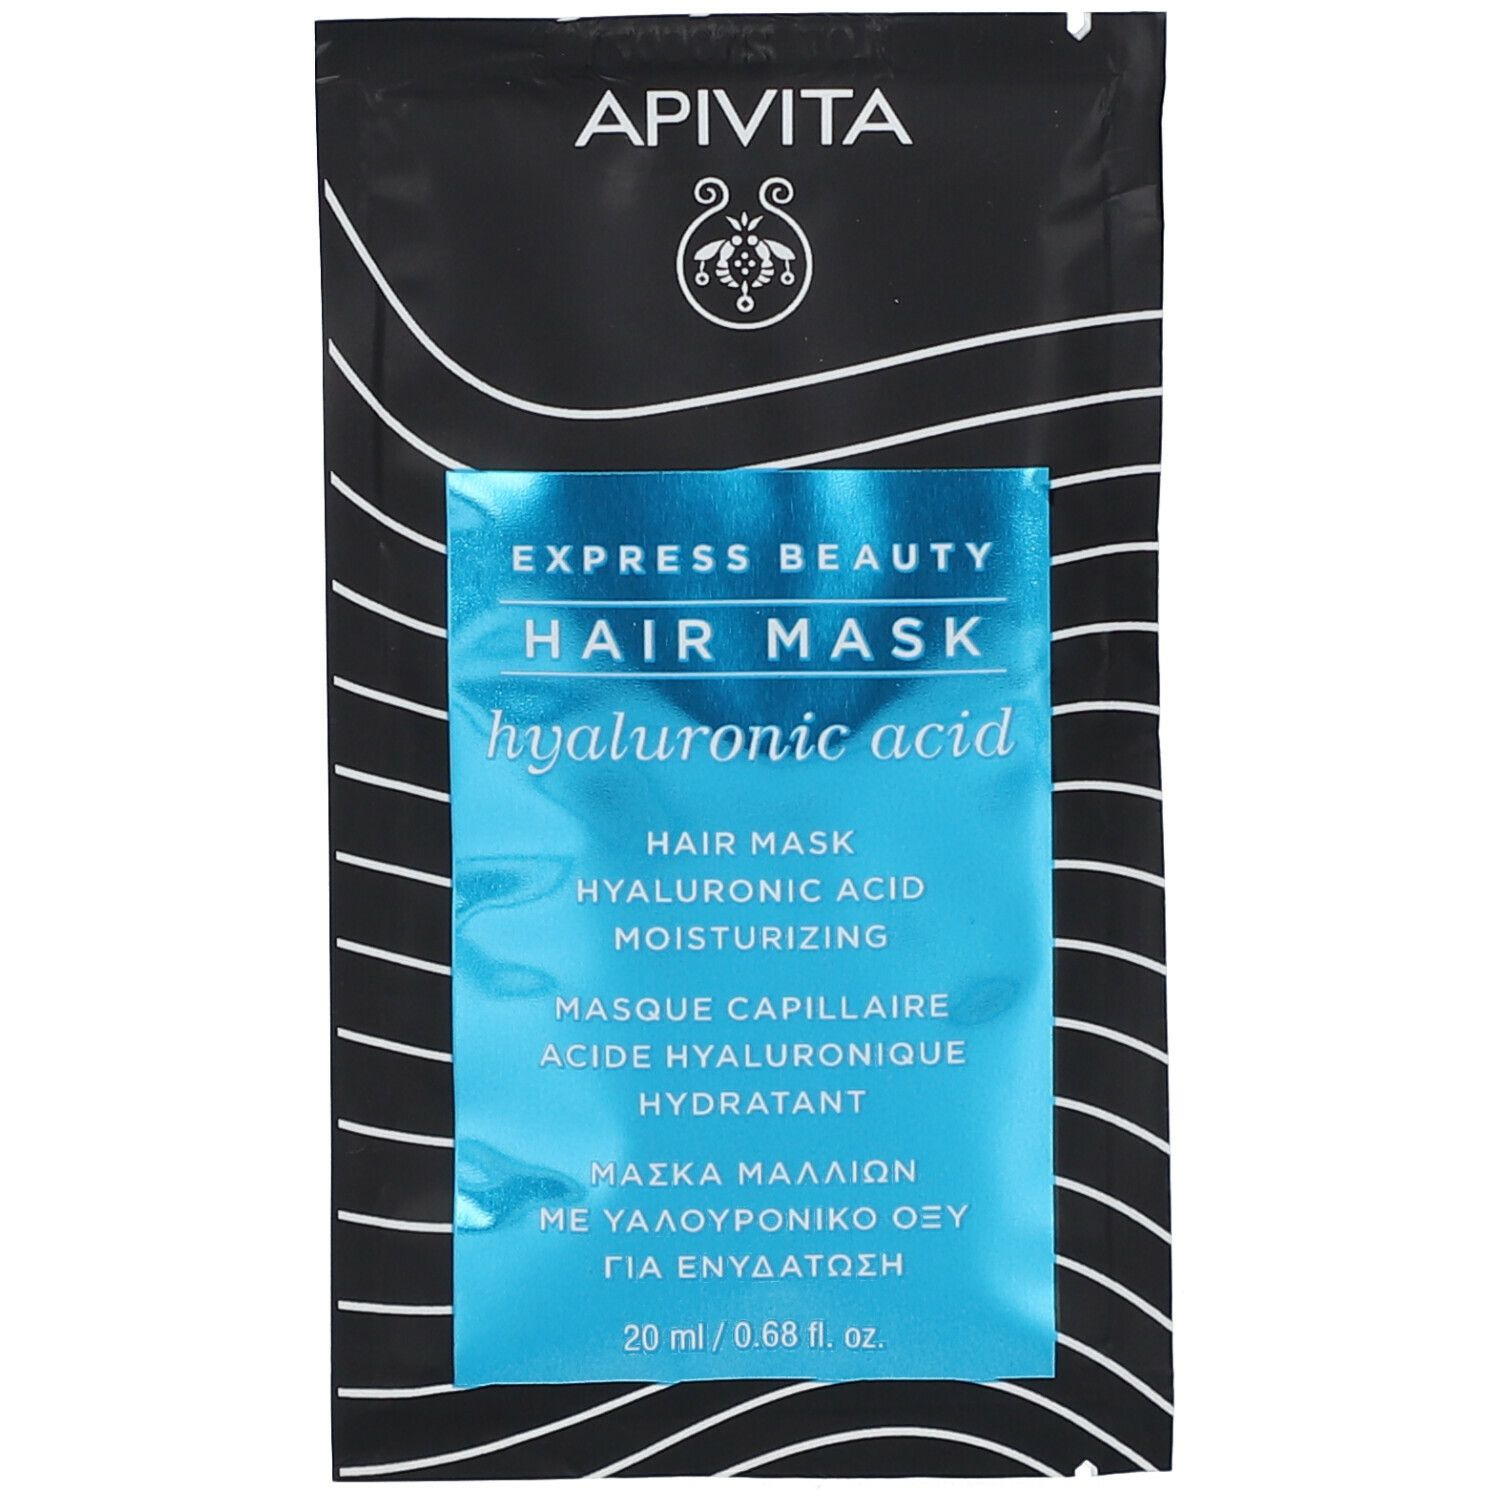 Image of Apivita Express Beauty Masque capillaire hydratant